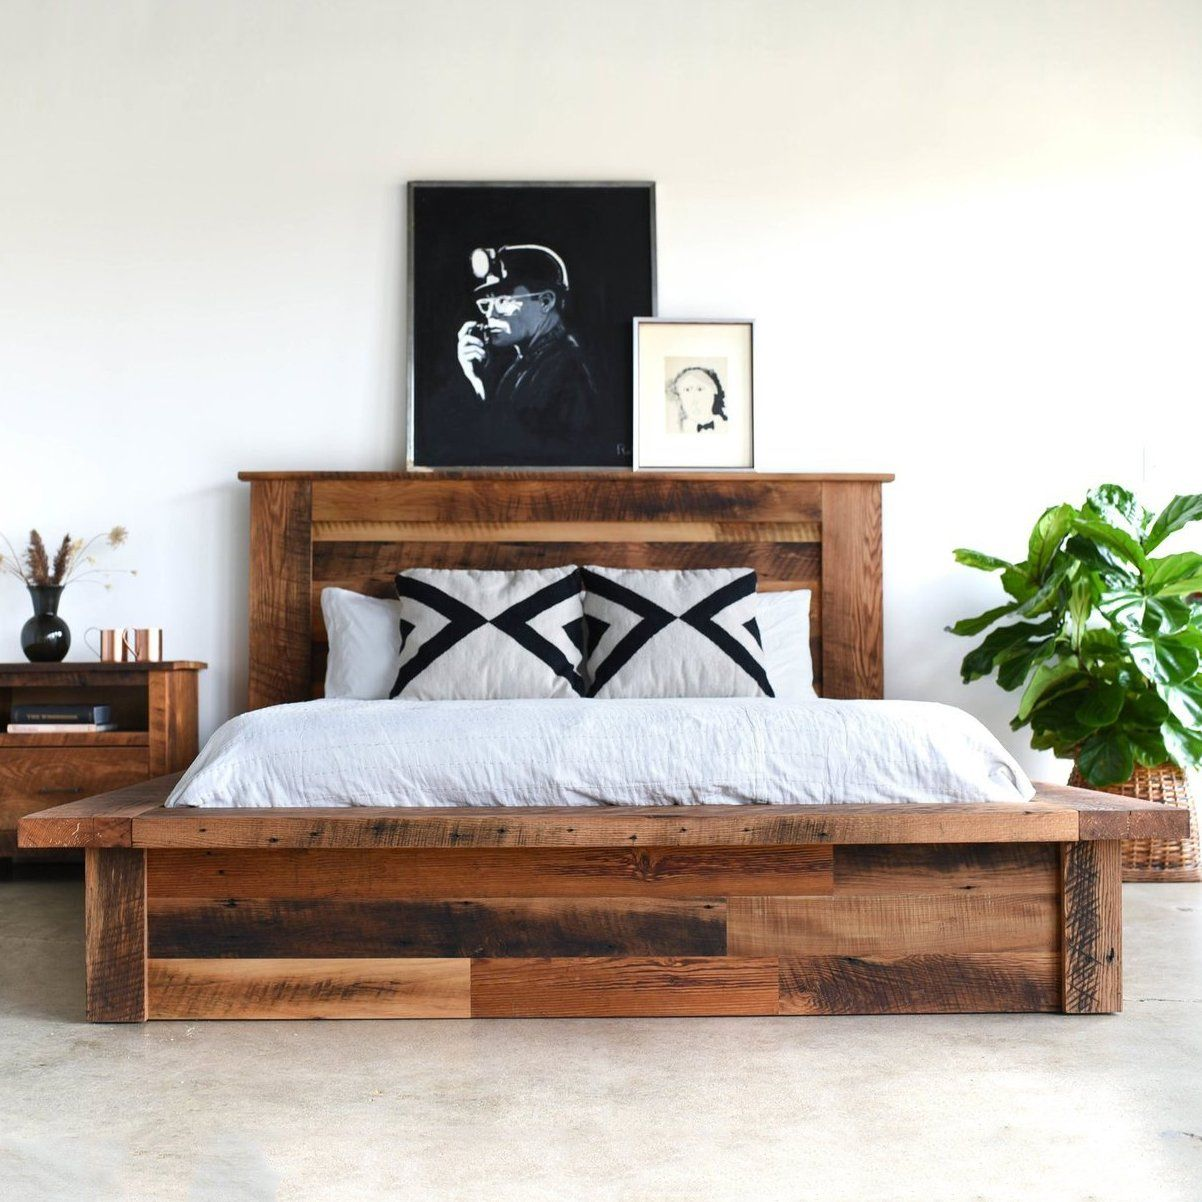 Fancy | Reclaimed Wood Platform Bed | Casa de los nenes | Pinterest ...